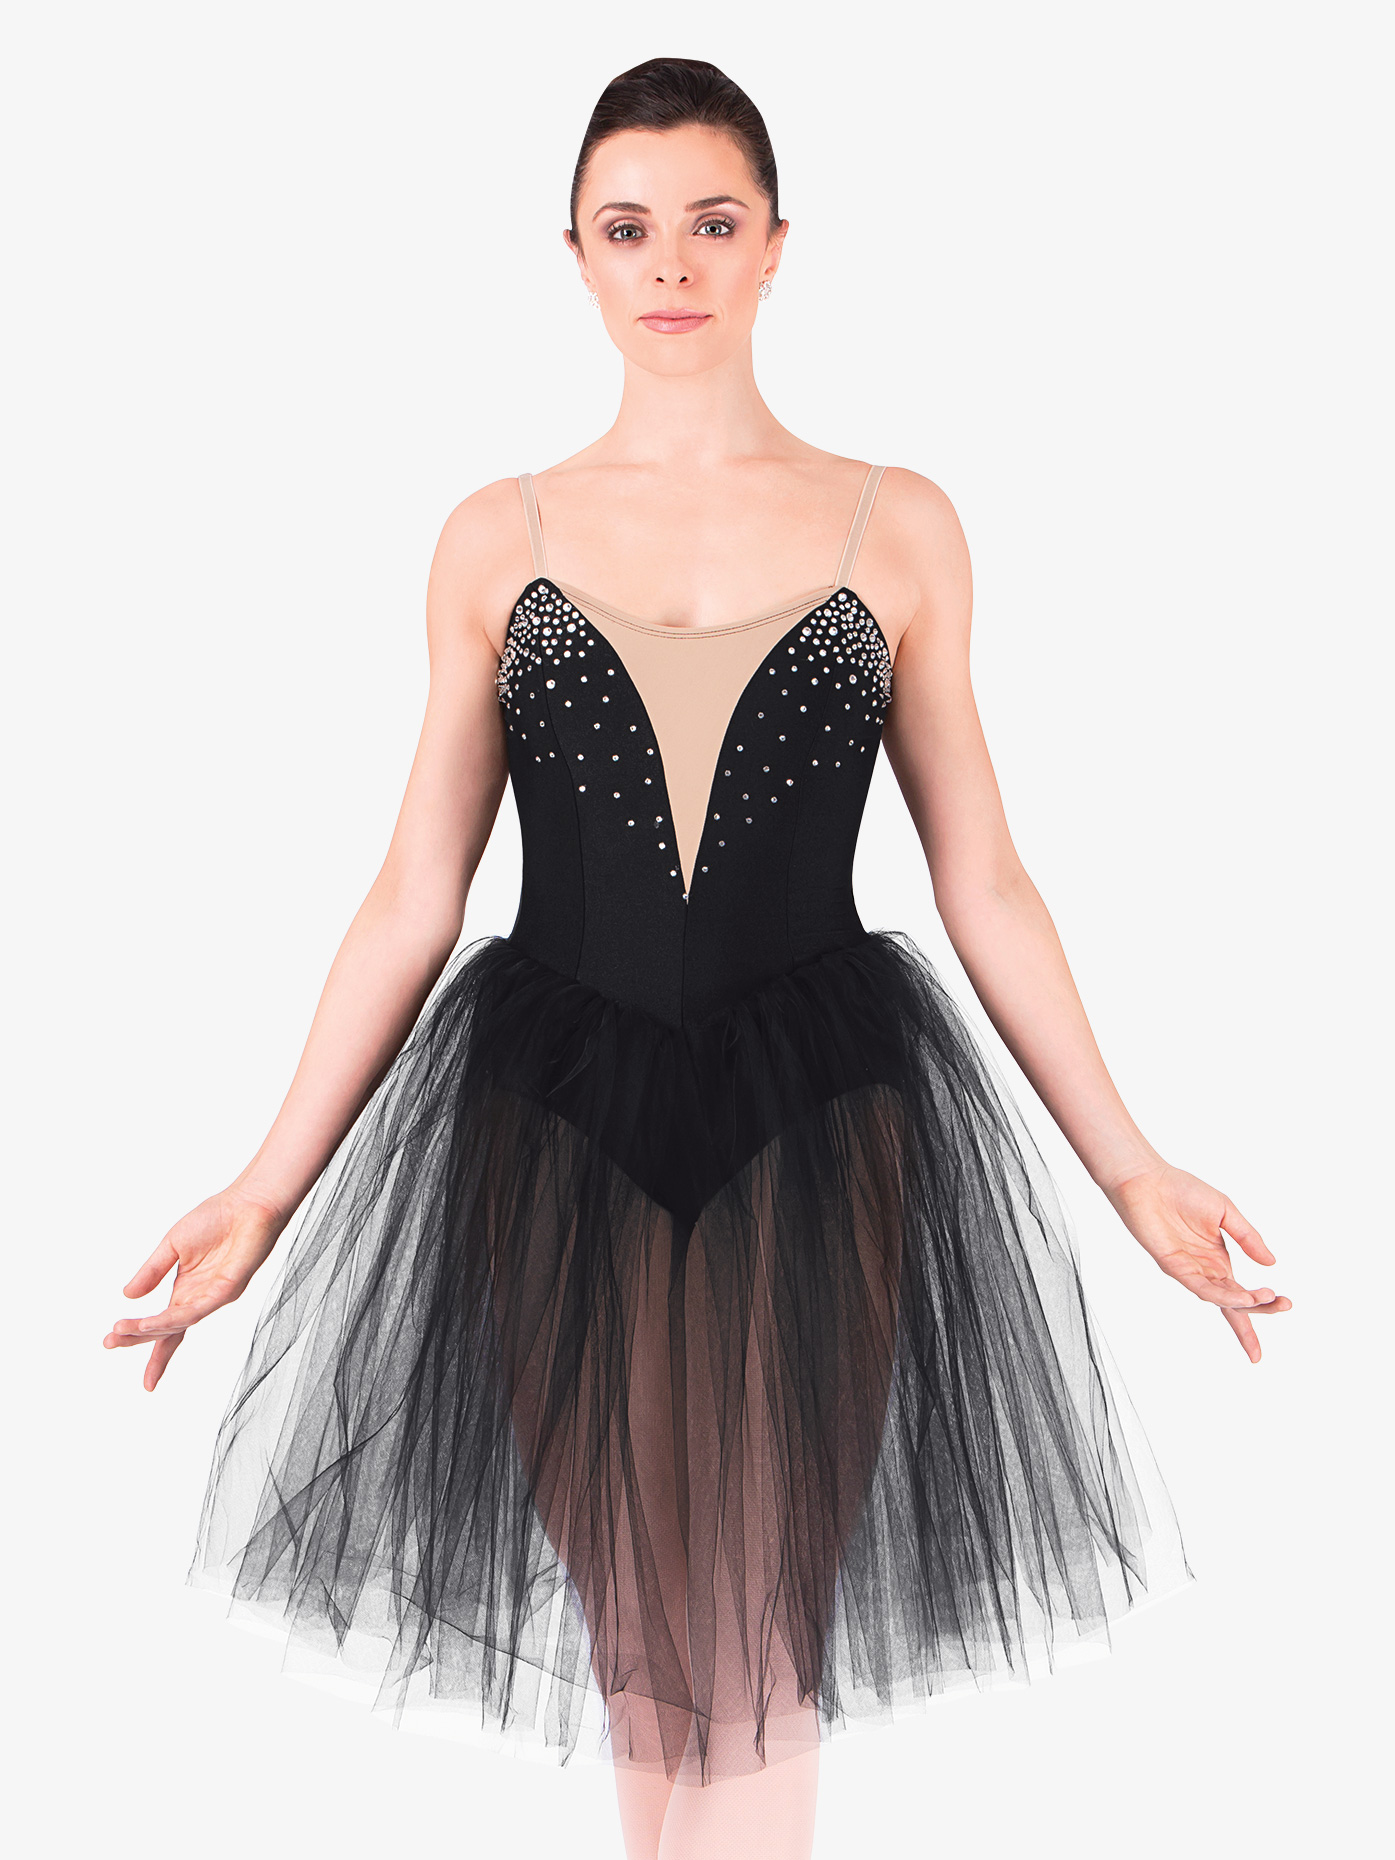 Natalie Adult Classical Tutu Dress With Nude Insert N8438